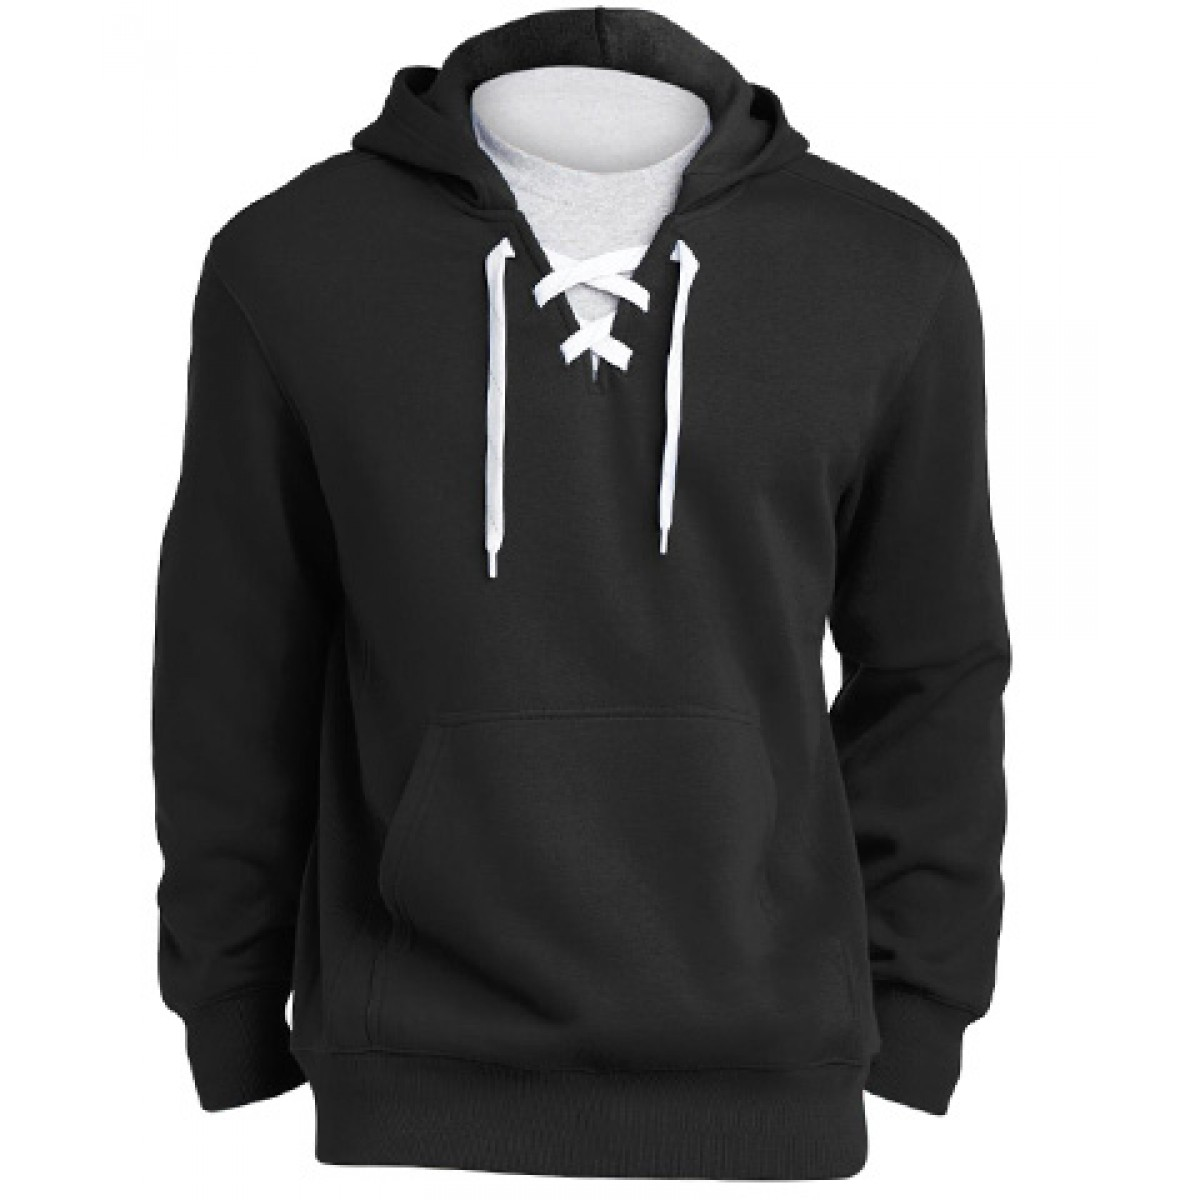 Lace Up Pullover Hooded Sweatshirt-Black-M